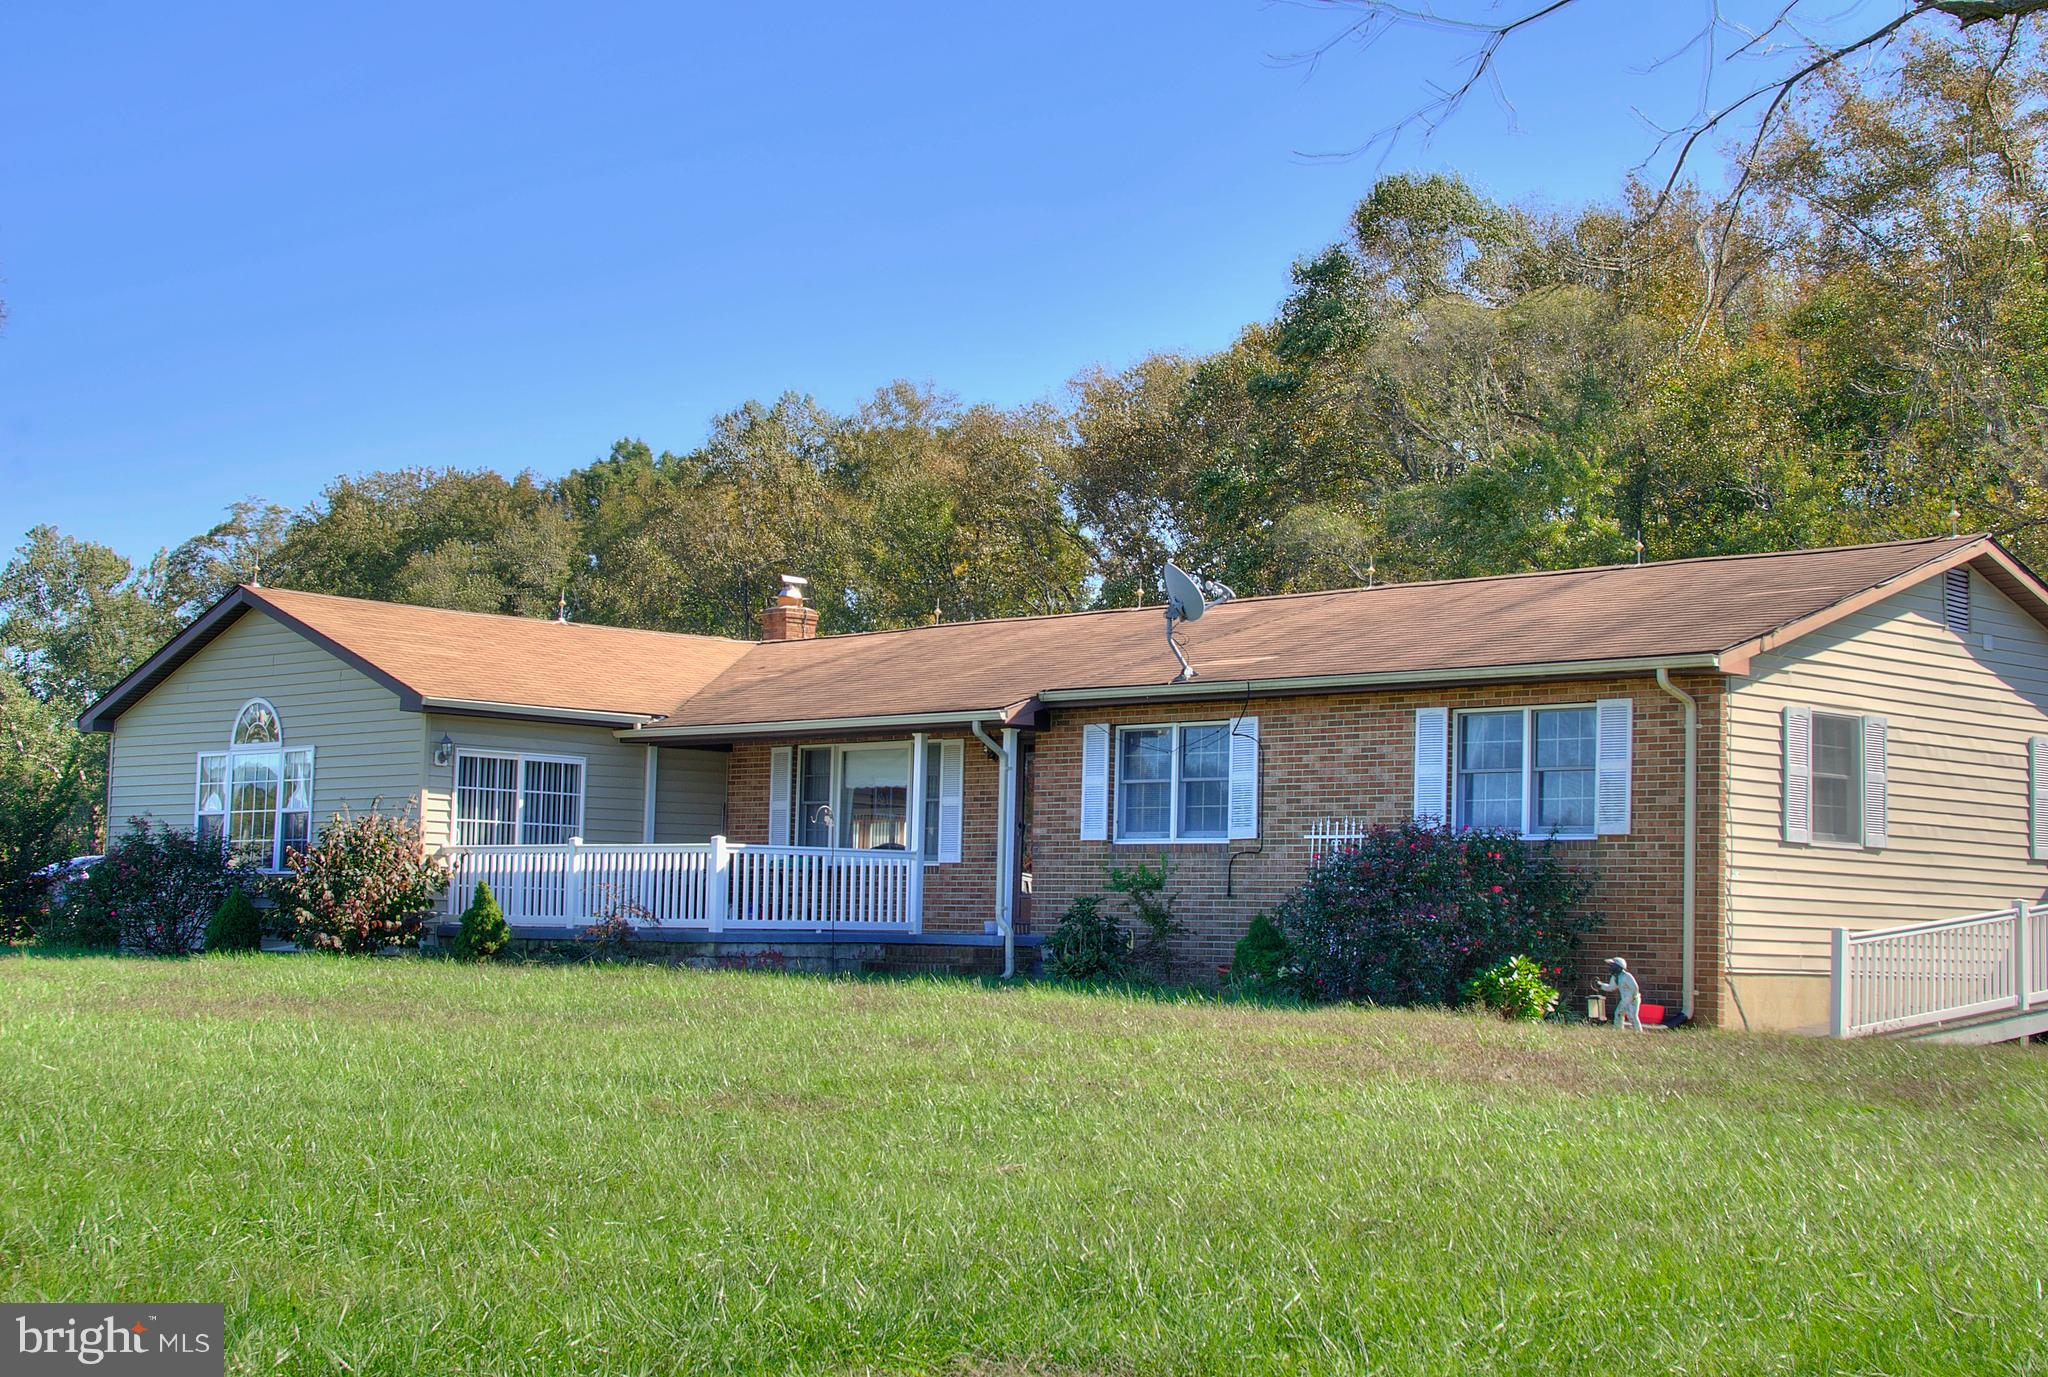 5730 SANDY POINT ROAD, PRINCE FREDERICK, MD 20678